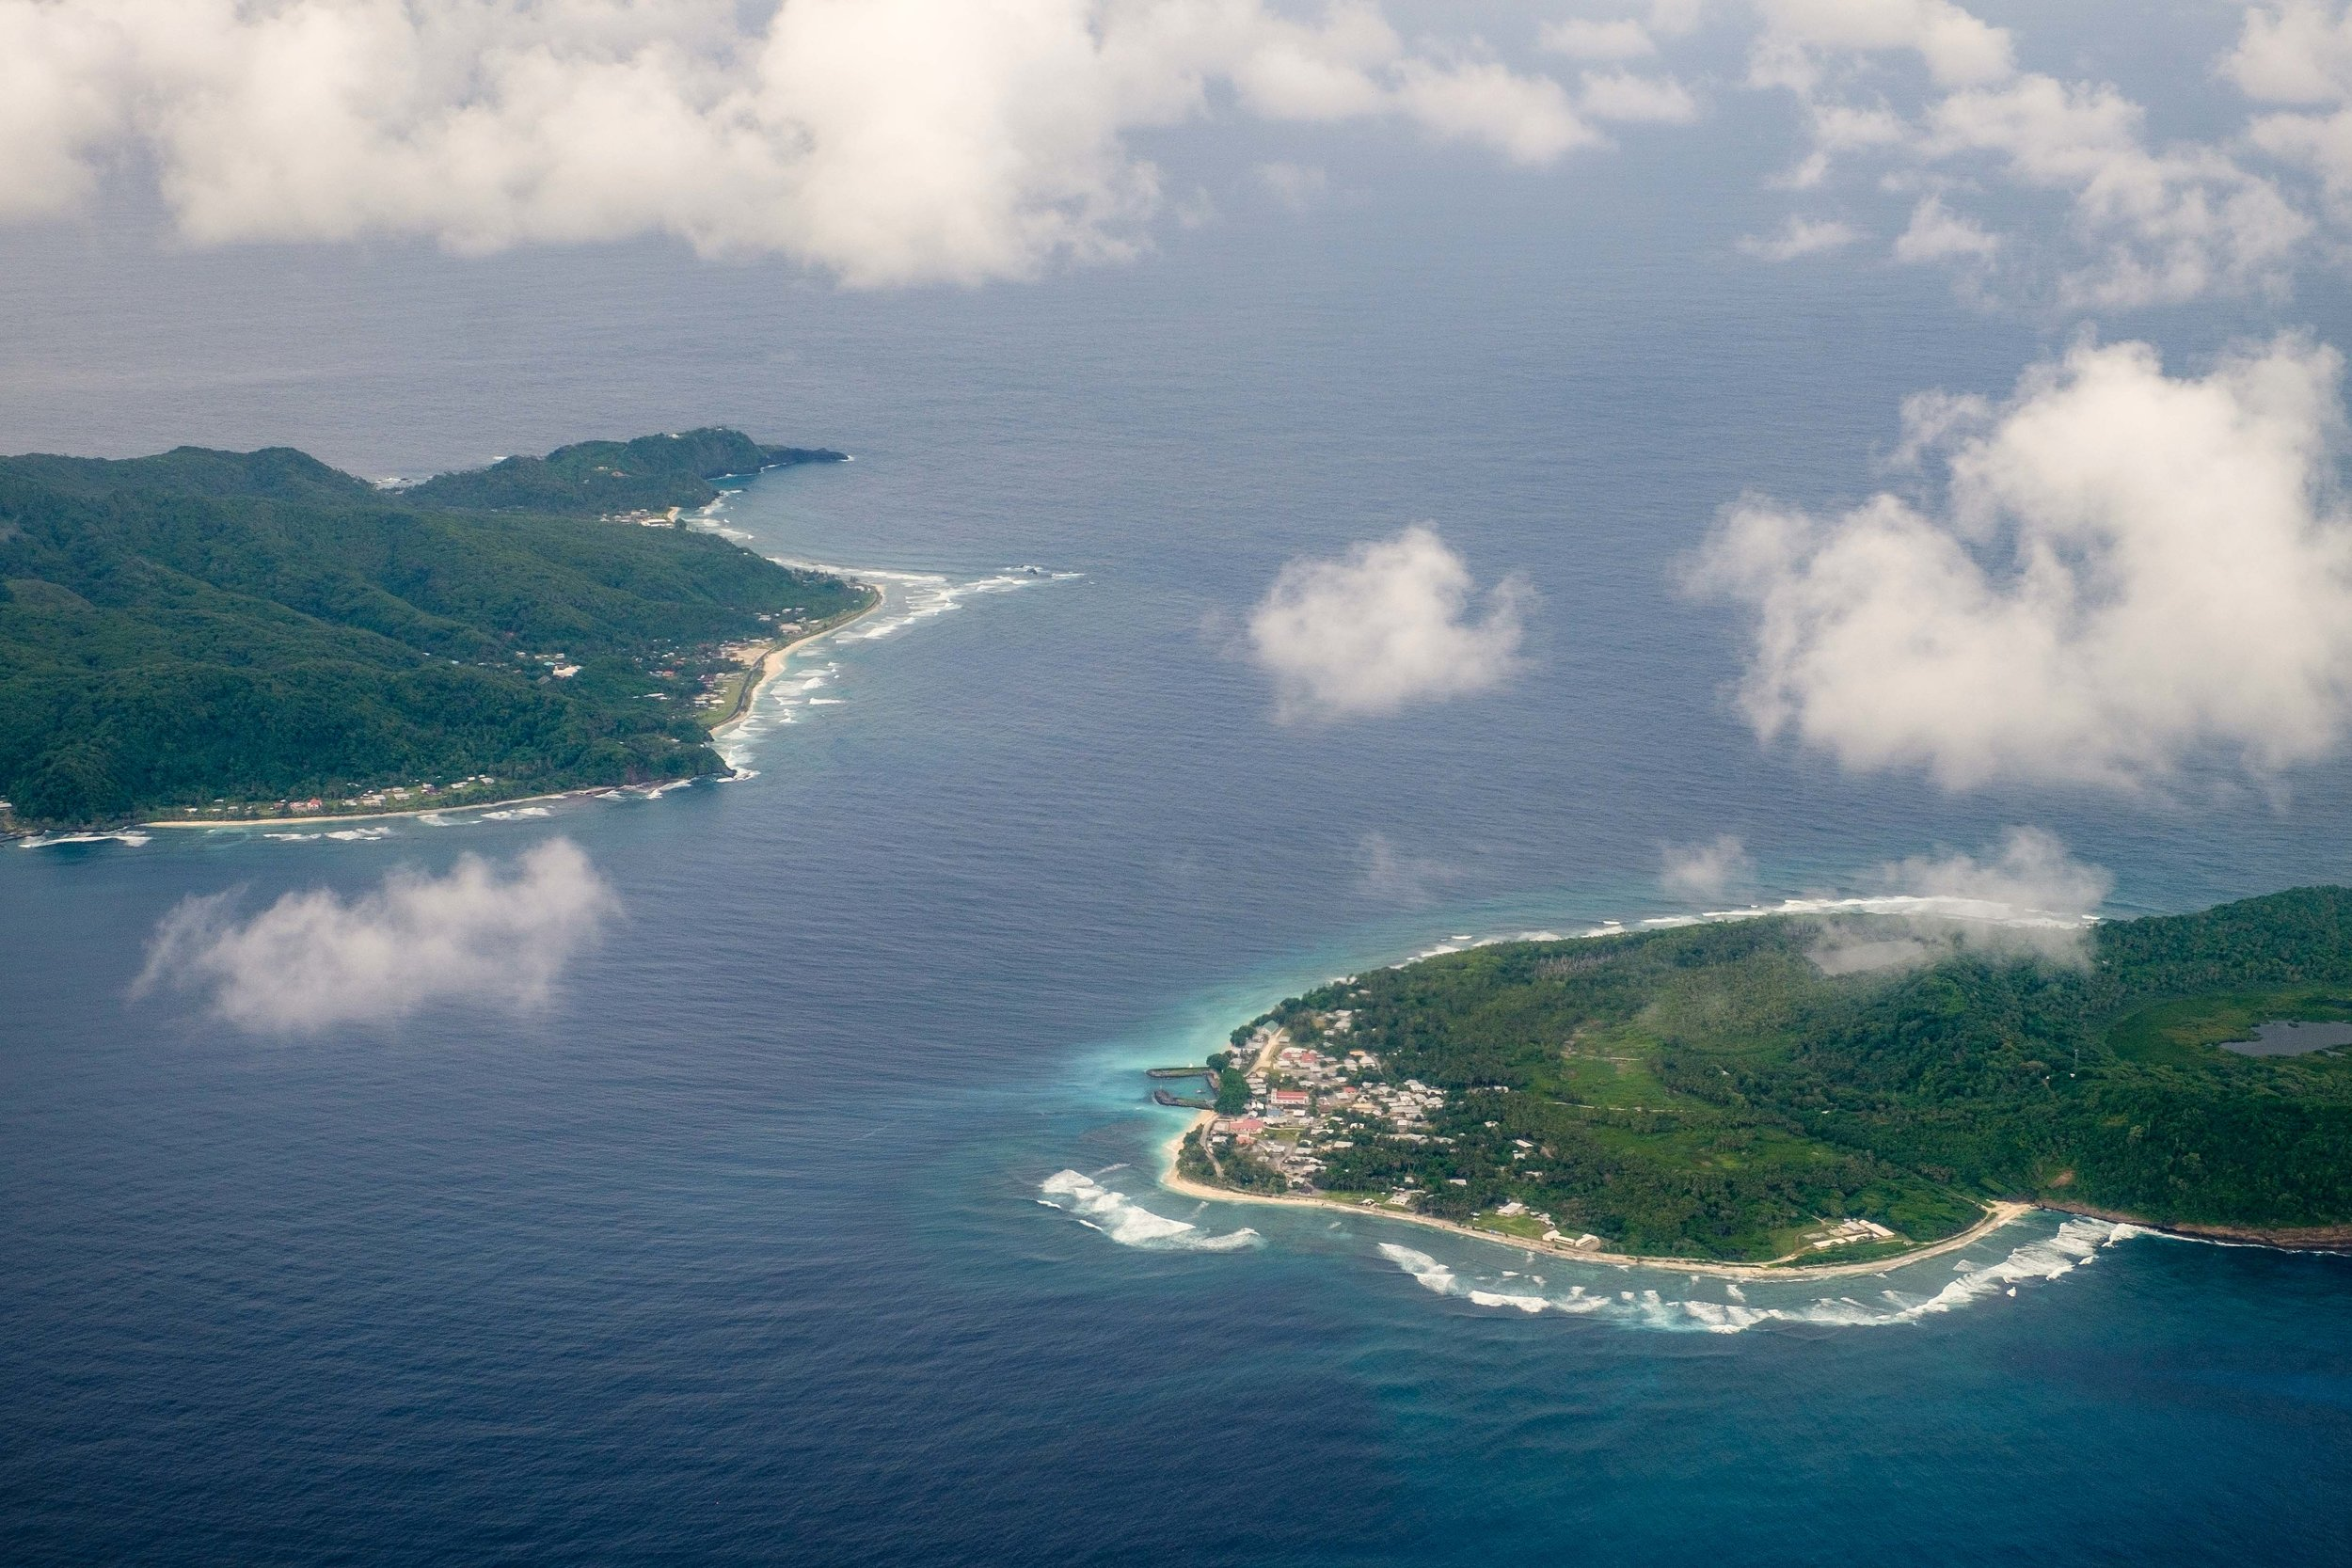 The National Park of American Samoa is located on three islands: Ta'ū, Ofu (both part of the Manu'a Islands chain); and Tutuila, location of the capital city of Pago Pago.